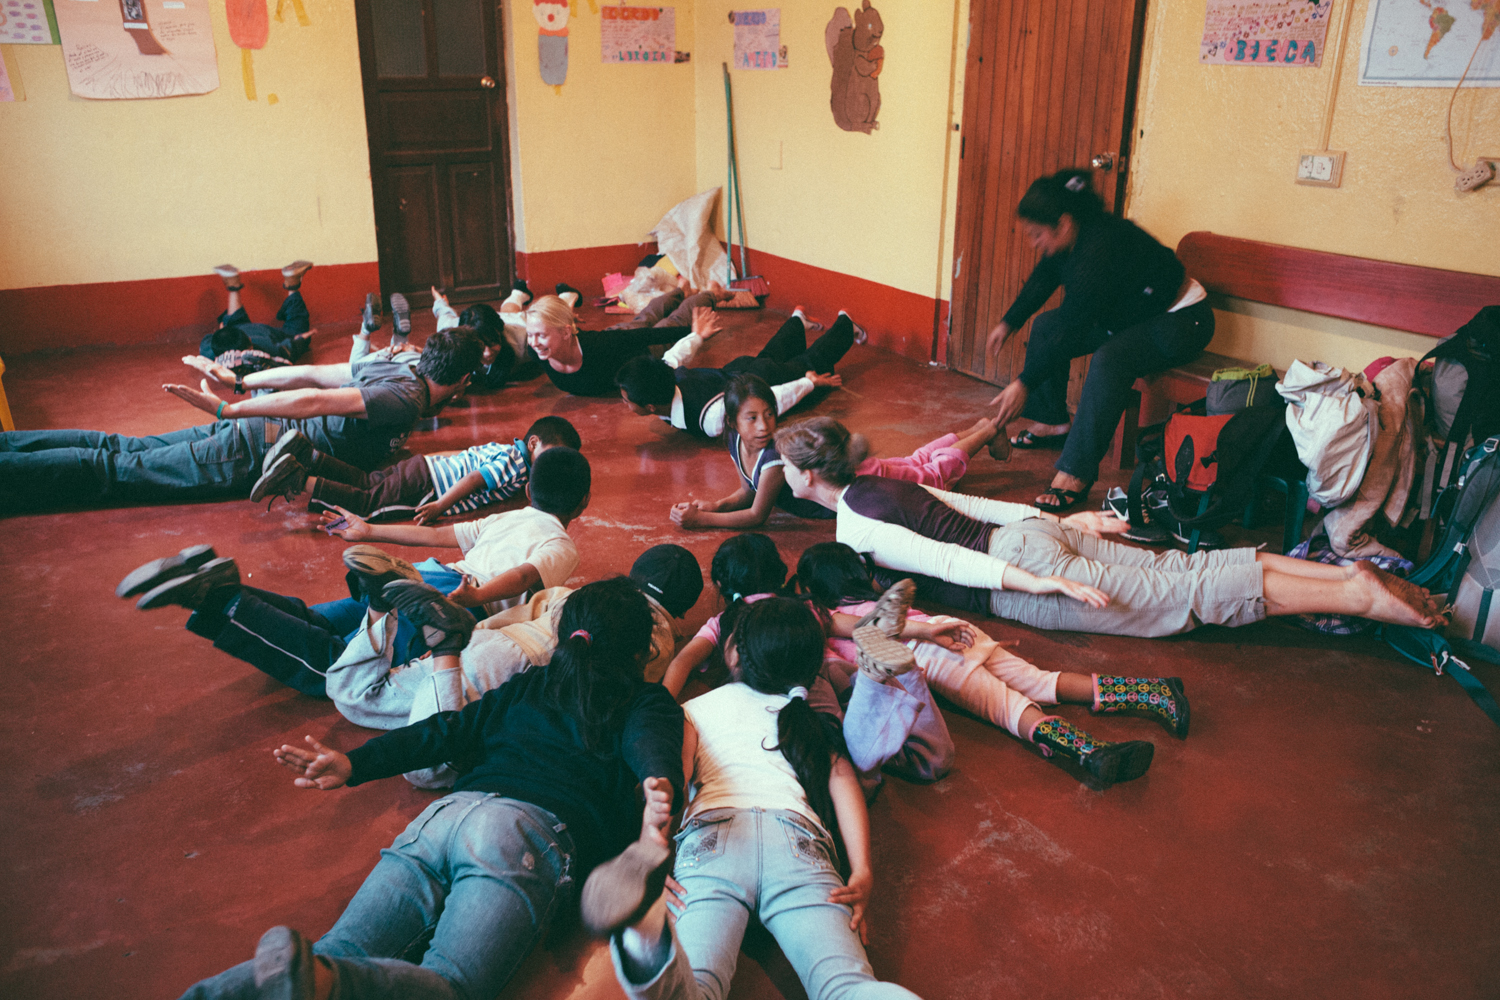 A yoga class led by Lauren was one of the activities we organized at the educational support centre